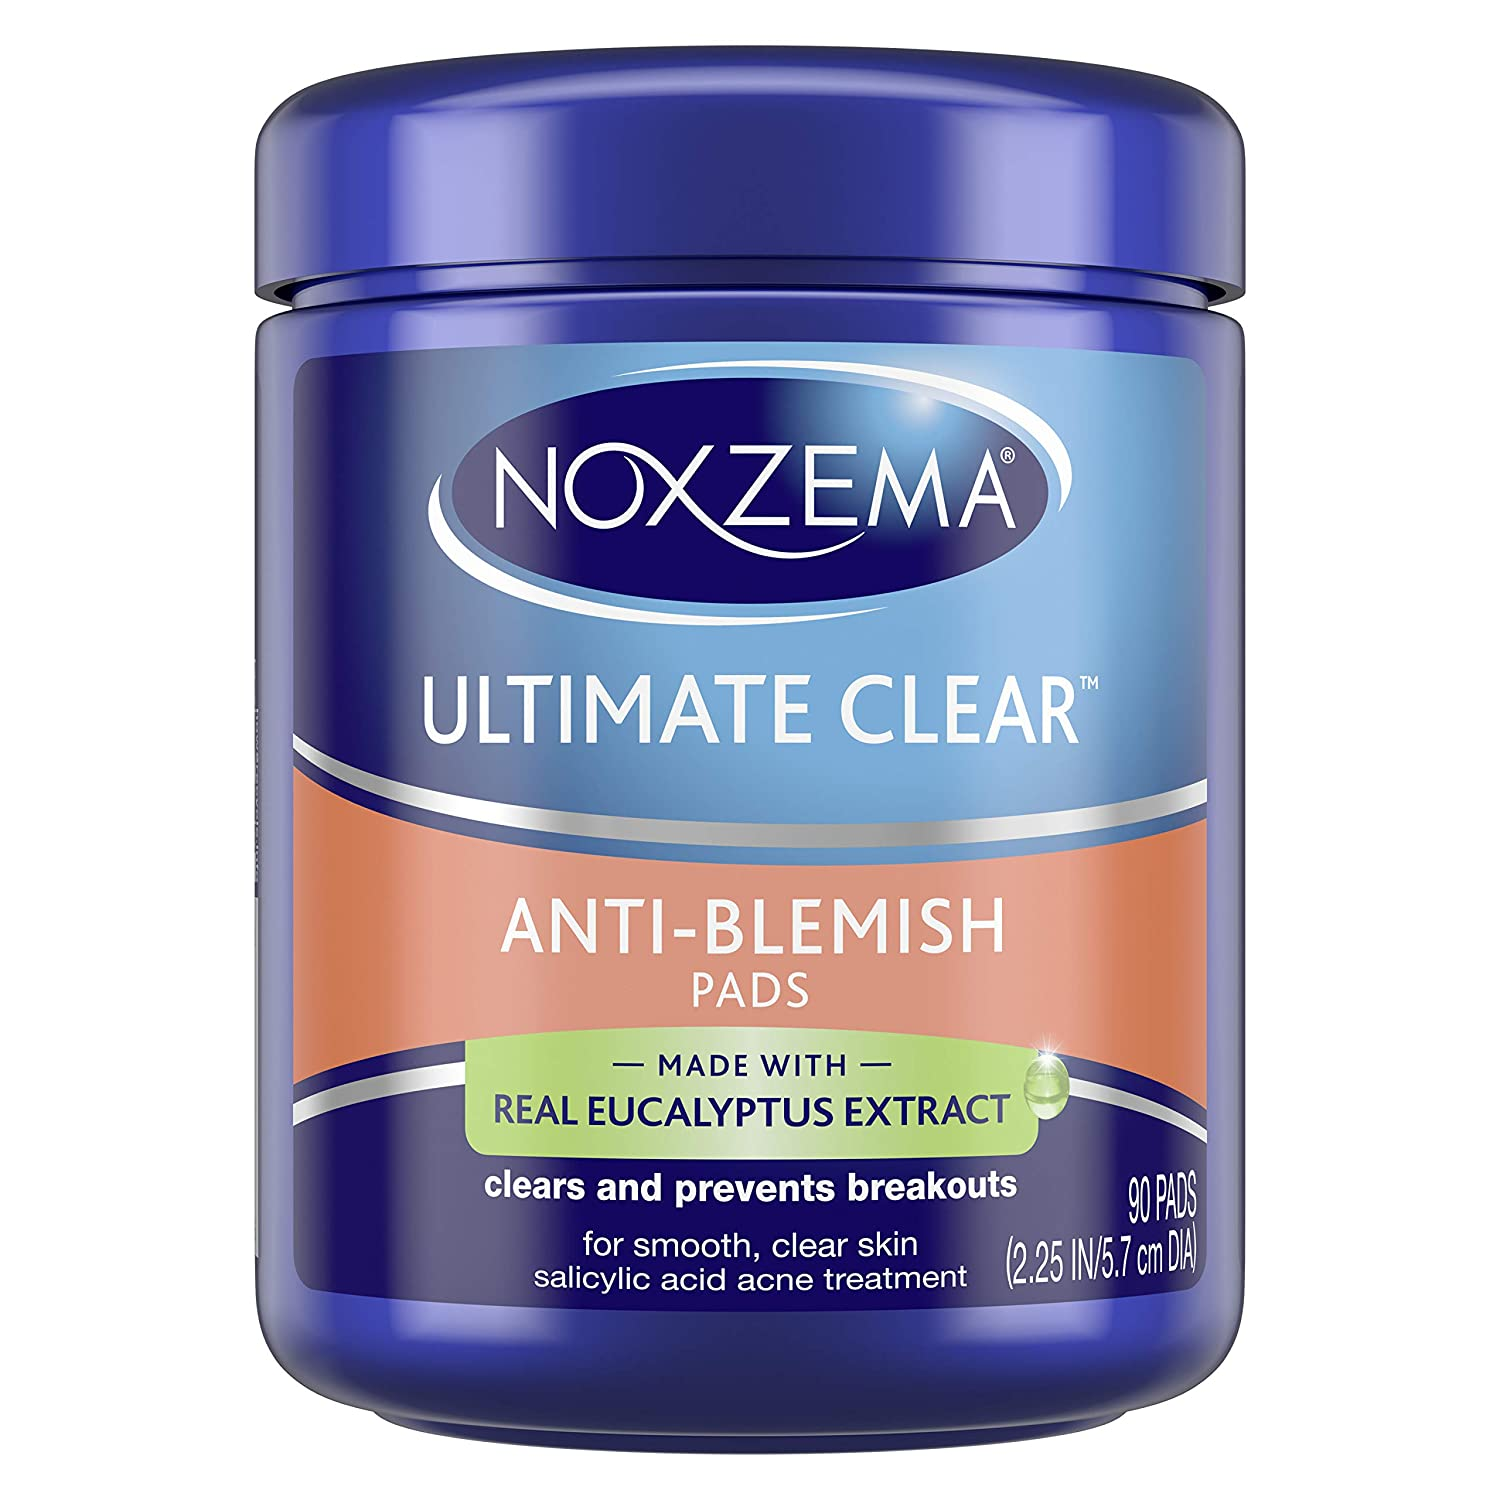 Noxzema Ultimate Clear Face Pads Clears and Prevents Acne Anti-Blemish Made with Over 60 percent Alcohol 90 Count, Pack of 6